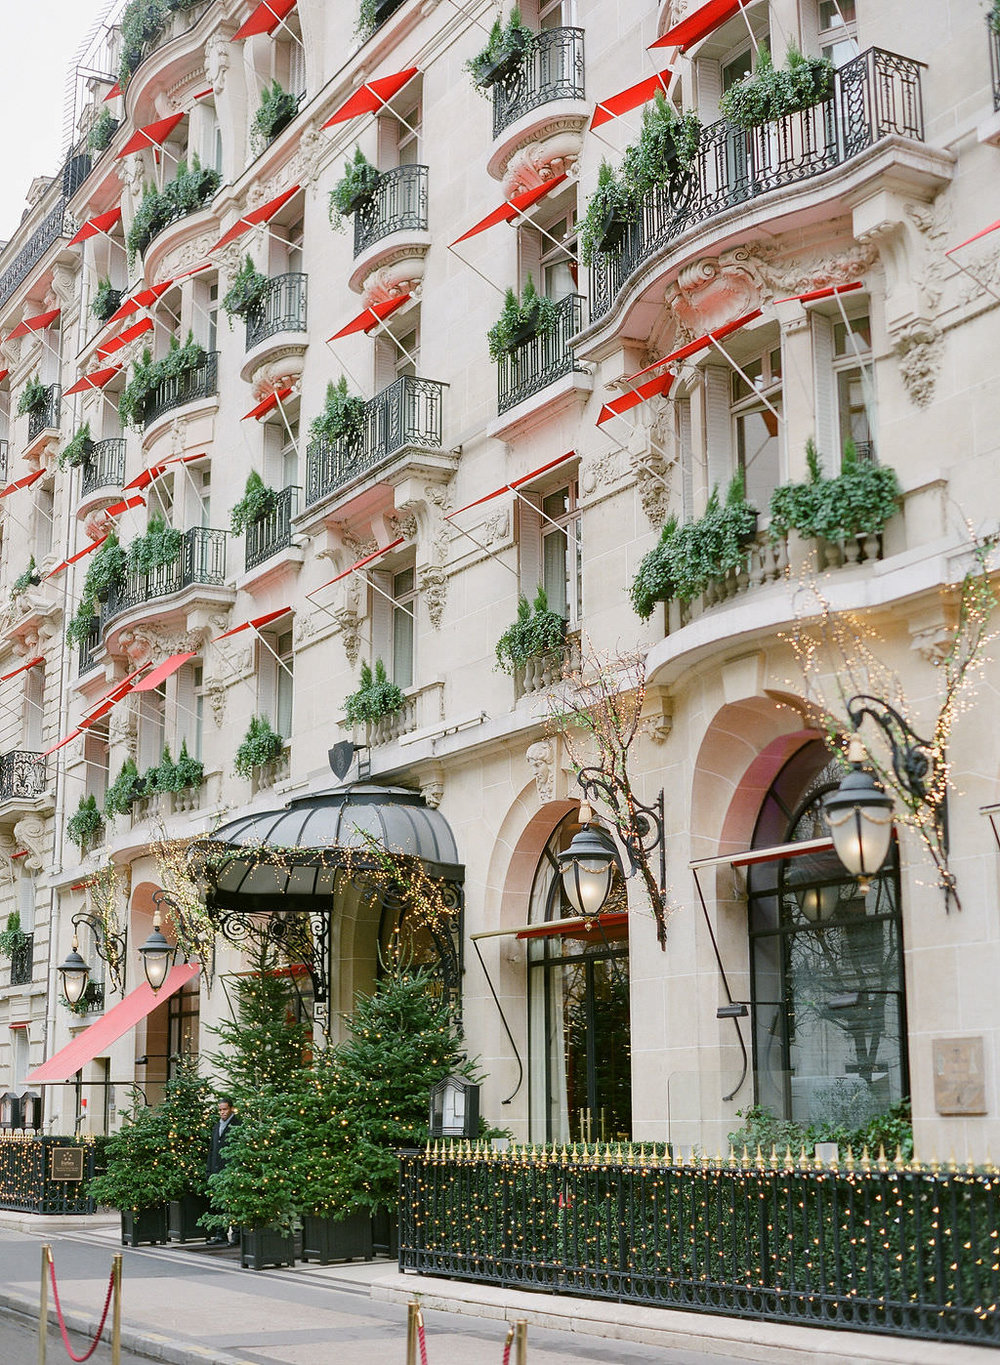 Hotel Plaza Athenee, Paris  in festive attire for the winter holidays   Greg Finck Photography